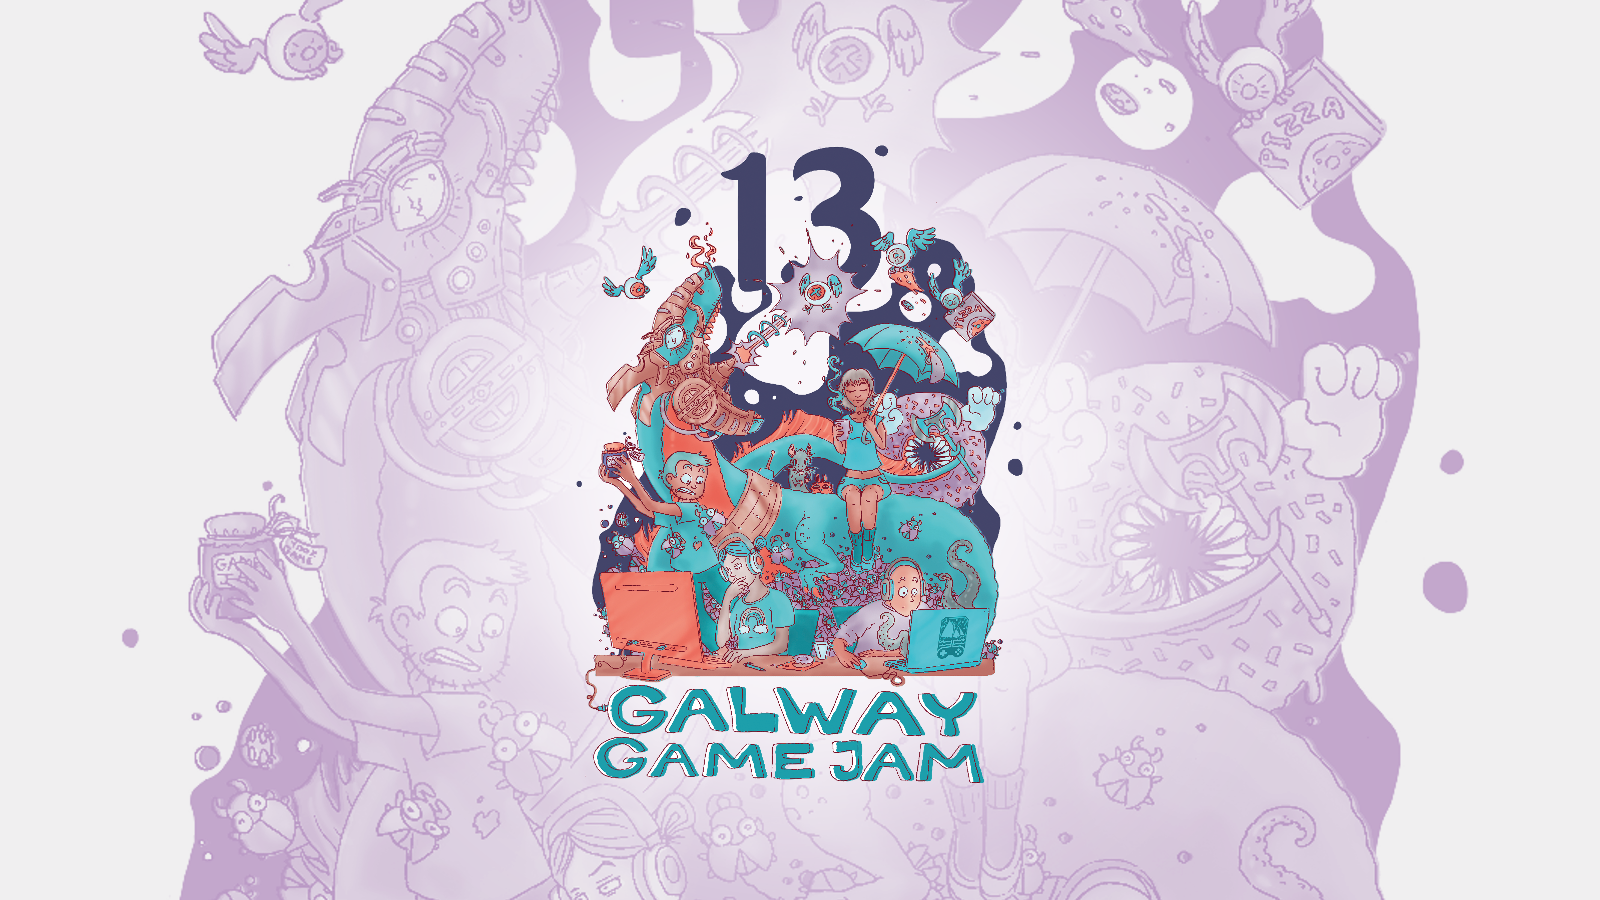 Galway Game Jam 13 Poster by Tia Friedel, GreenRat